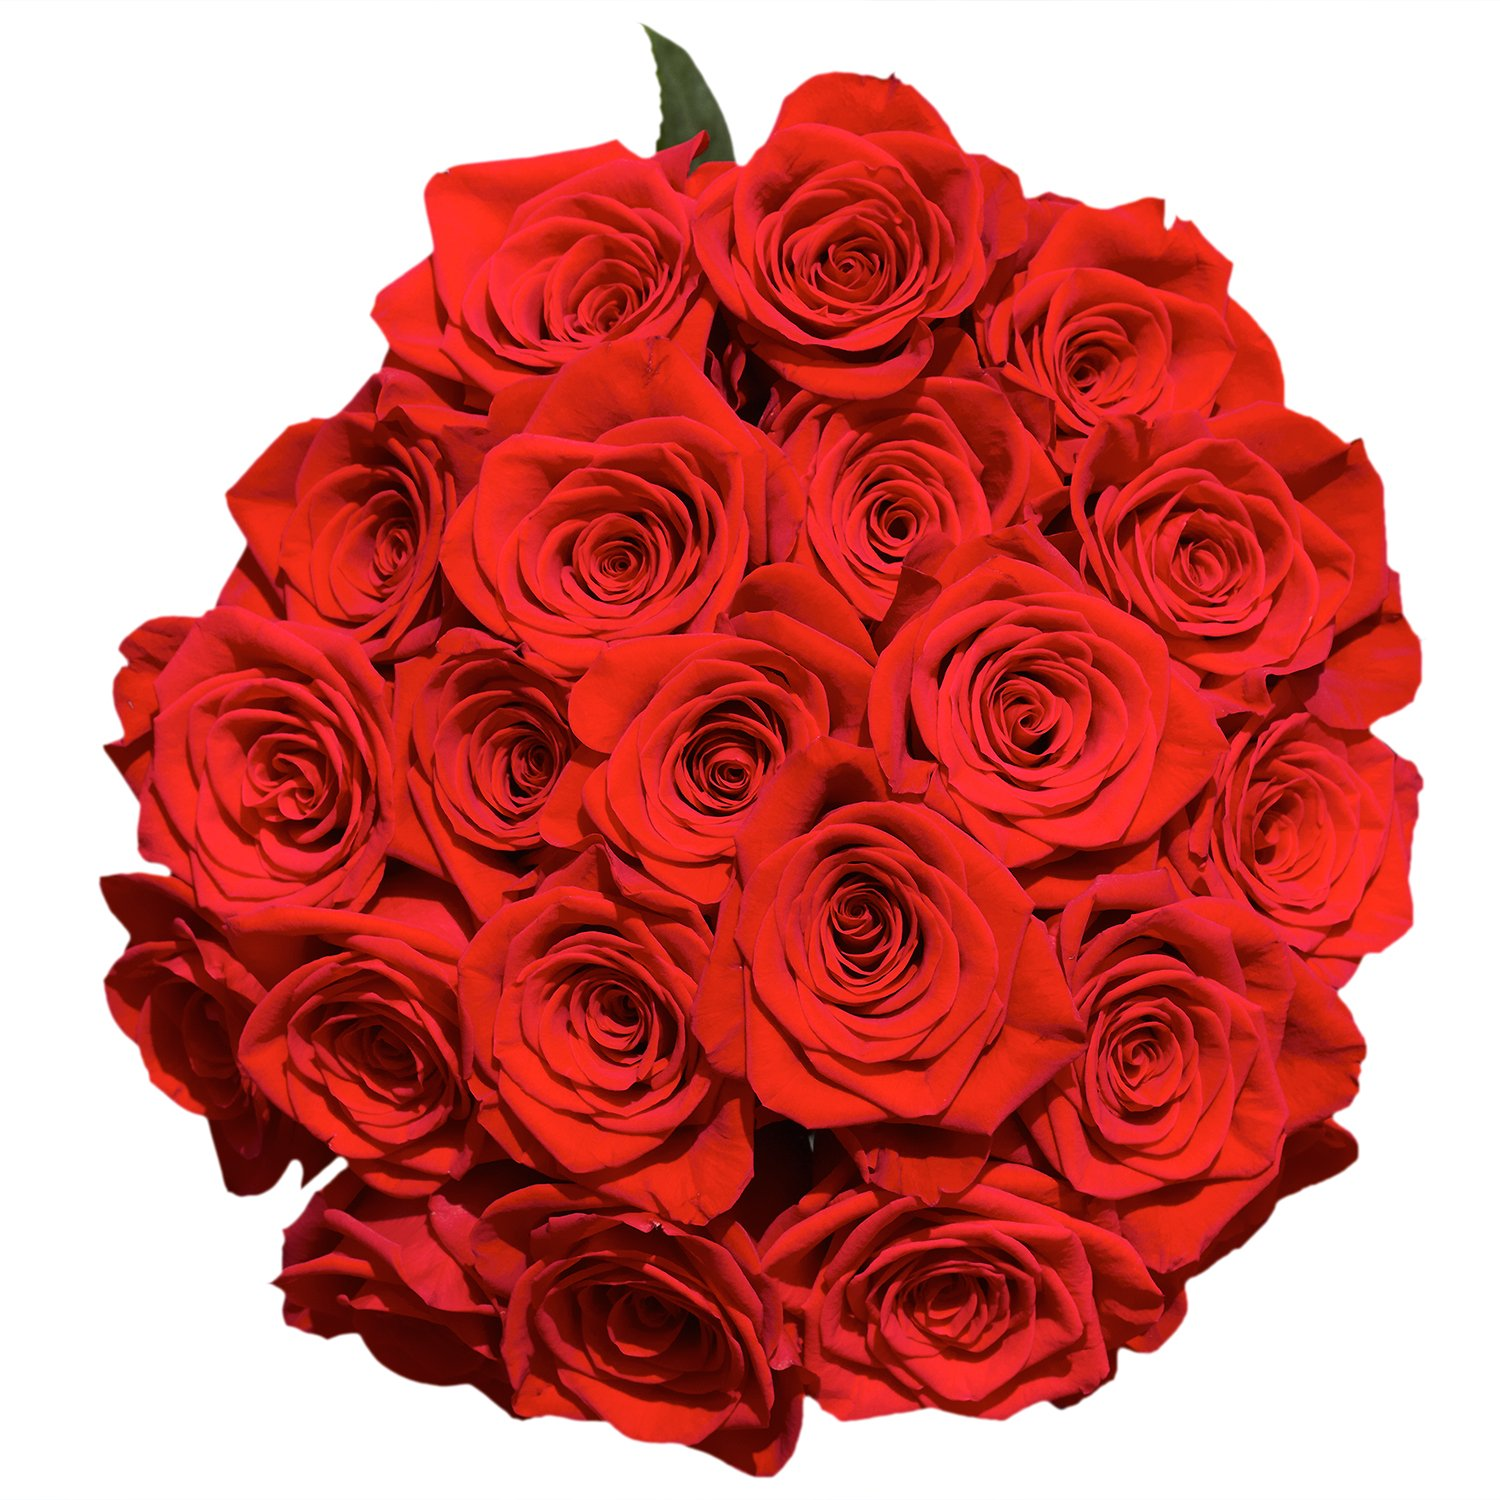 GlobalRose 200 Fresh Cut Red Roses - Freedom Red Roses - Fresh Flowers Wholesale Express Delivery by GlobalRose